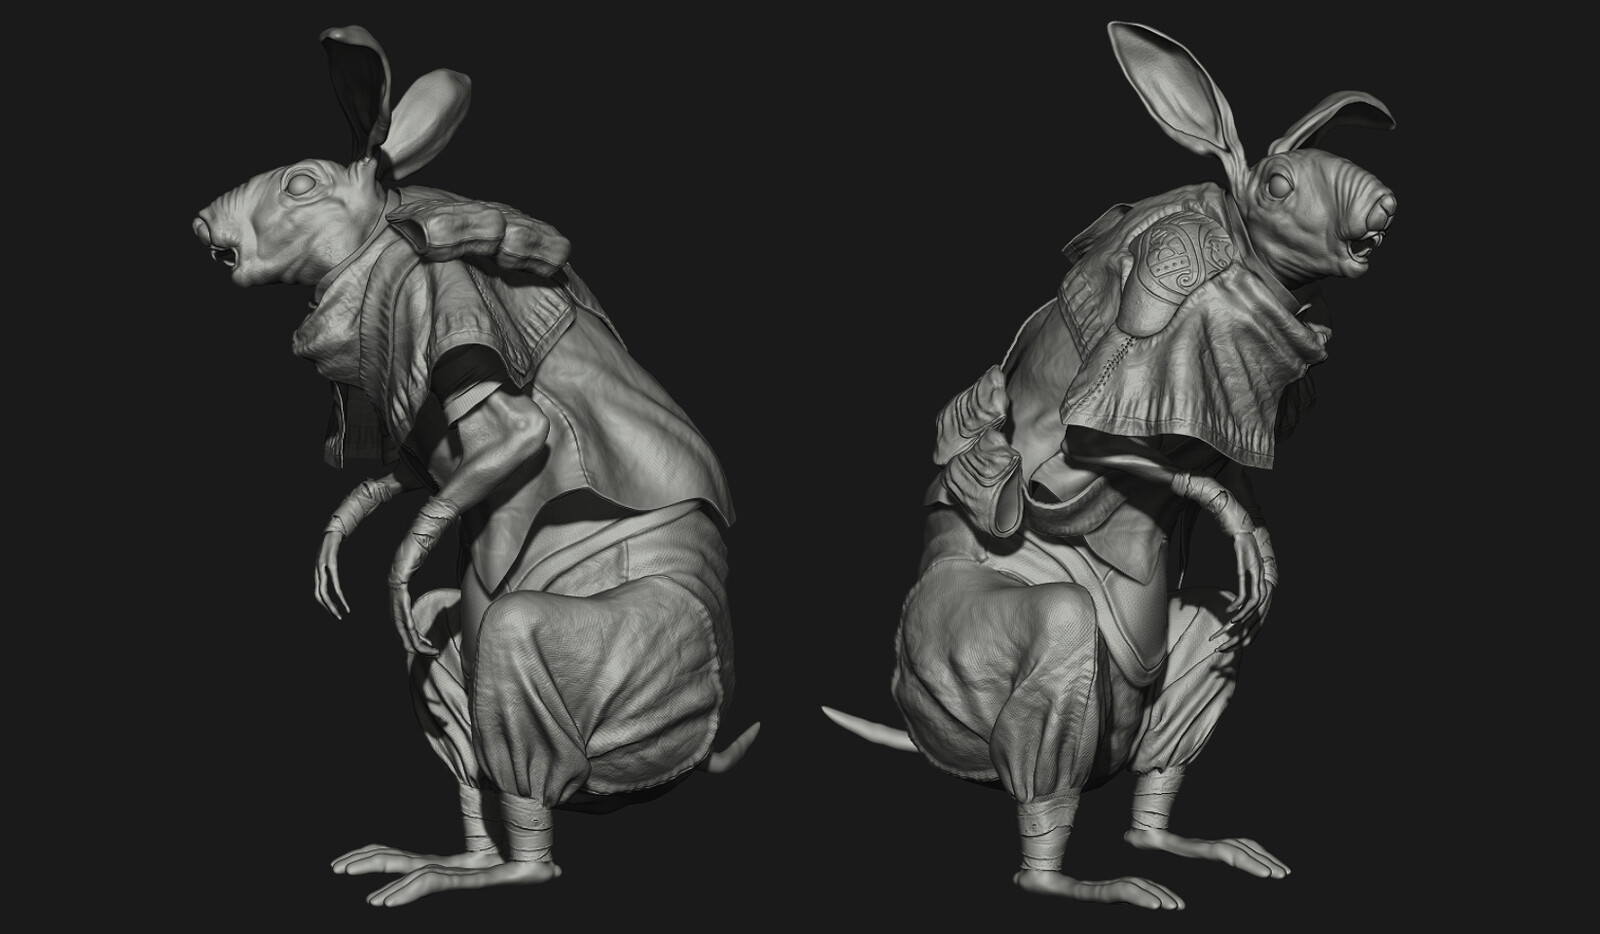 Sculpture from Zbrush